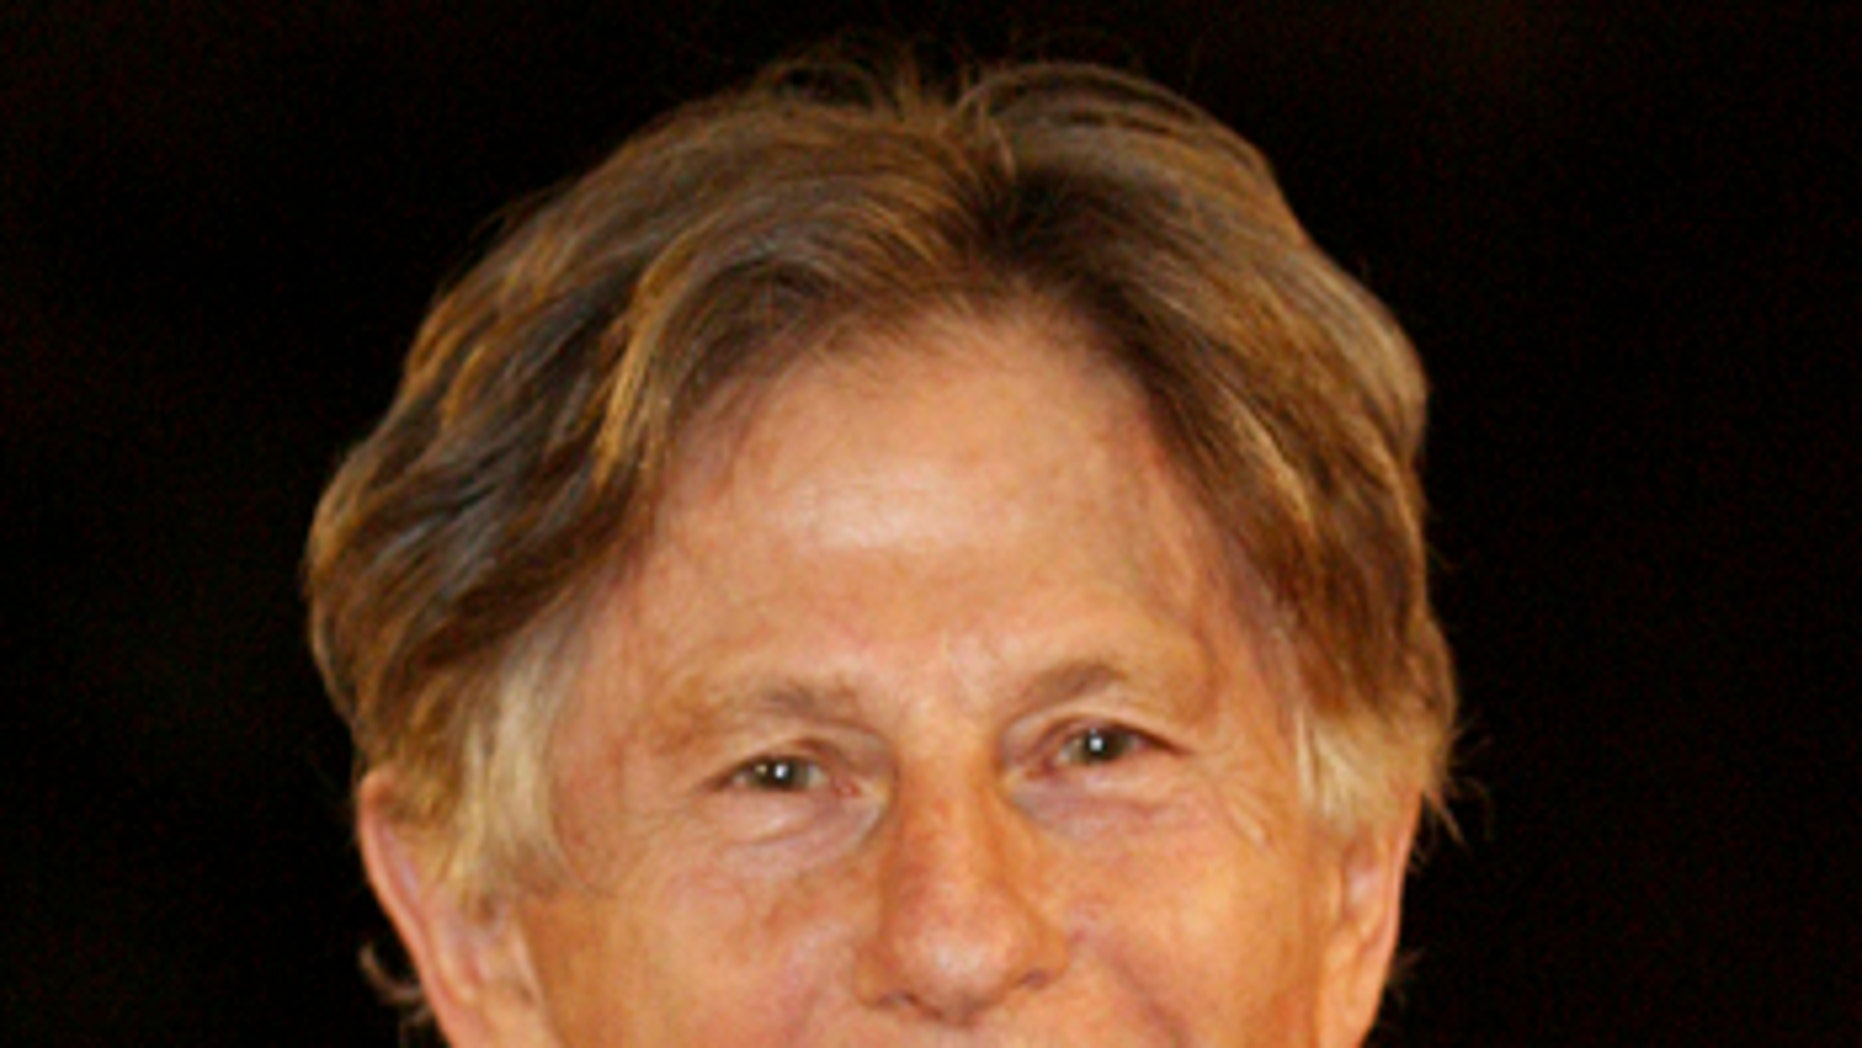 ** FILE ** In this Nov. 14, 2008 file photo, Polish-born filmmaker and Academy Award winner Roman Polanski arrives for the opening ceremony at the 8th Marrakech Film Festival in Marrakech, Morocco.  (AP Photo/Abdeljalil Bounhar, file)